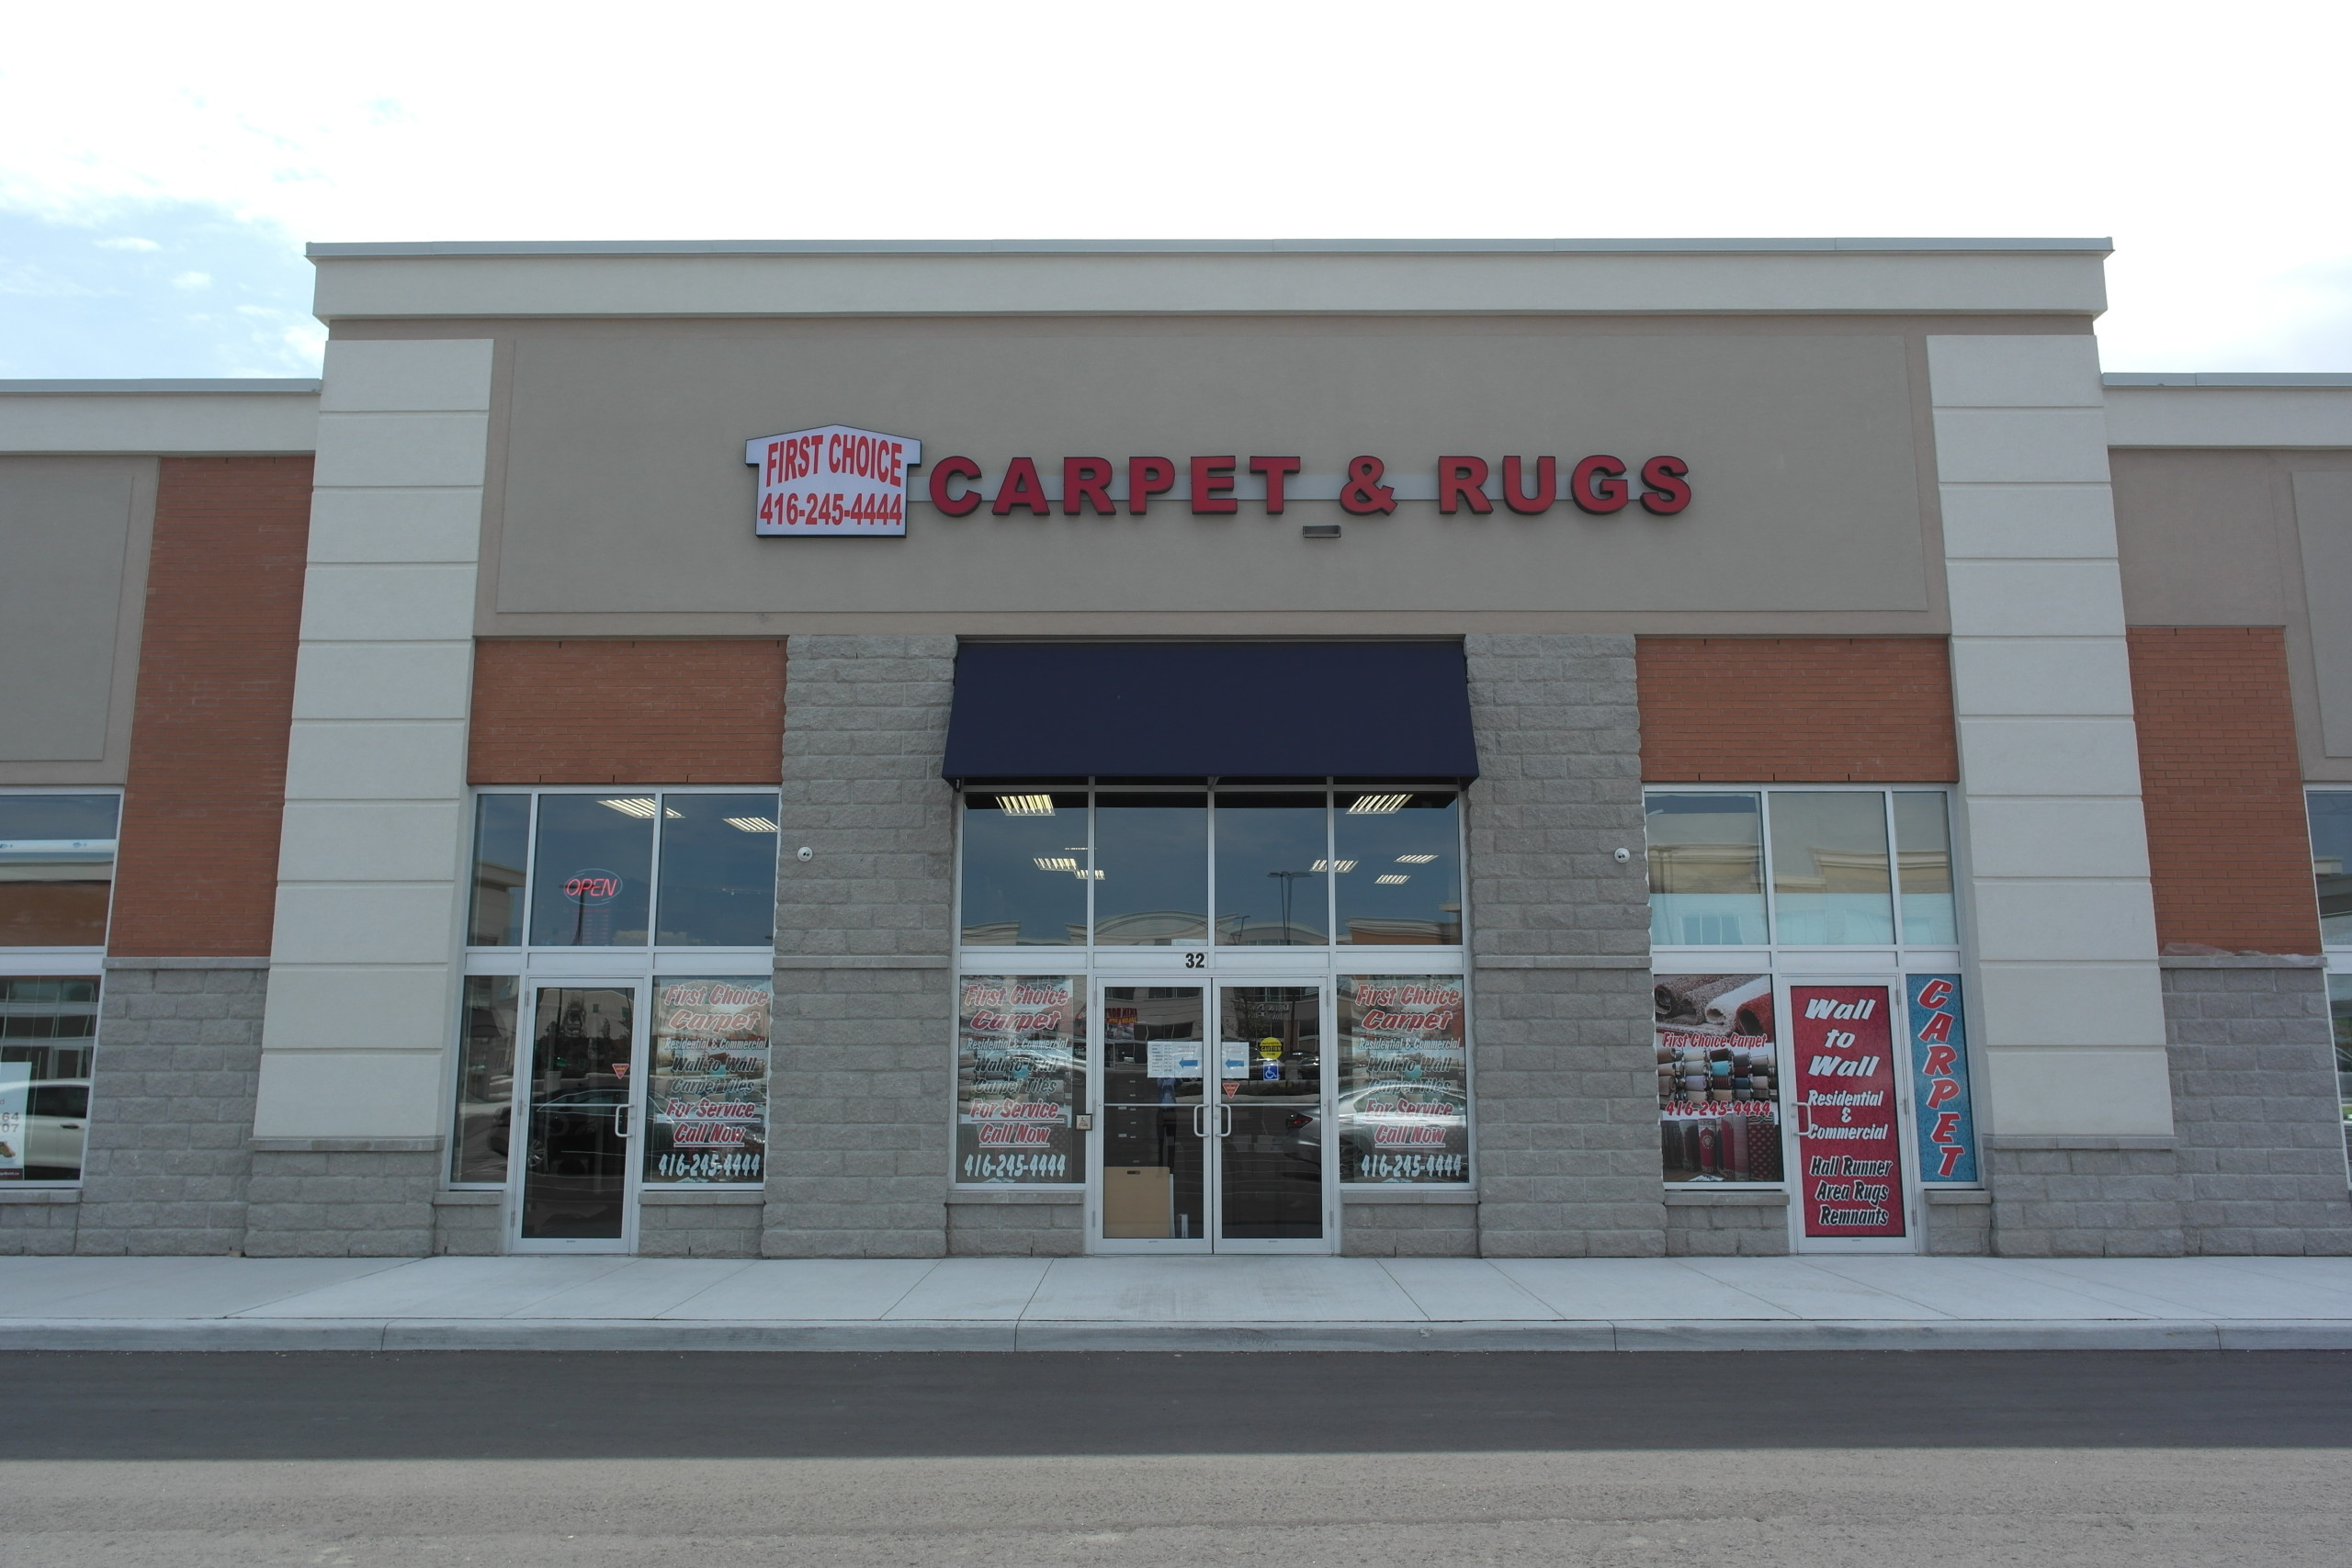 First Choice Carpet & Rugs Exterior View